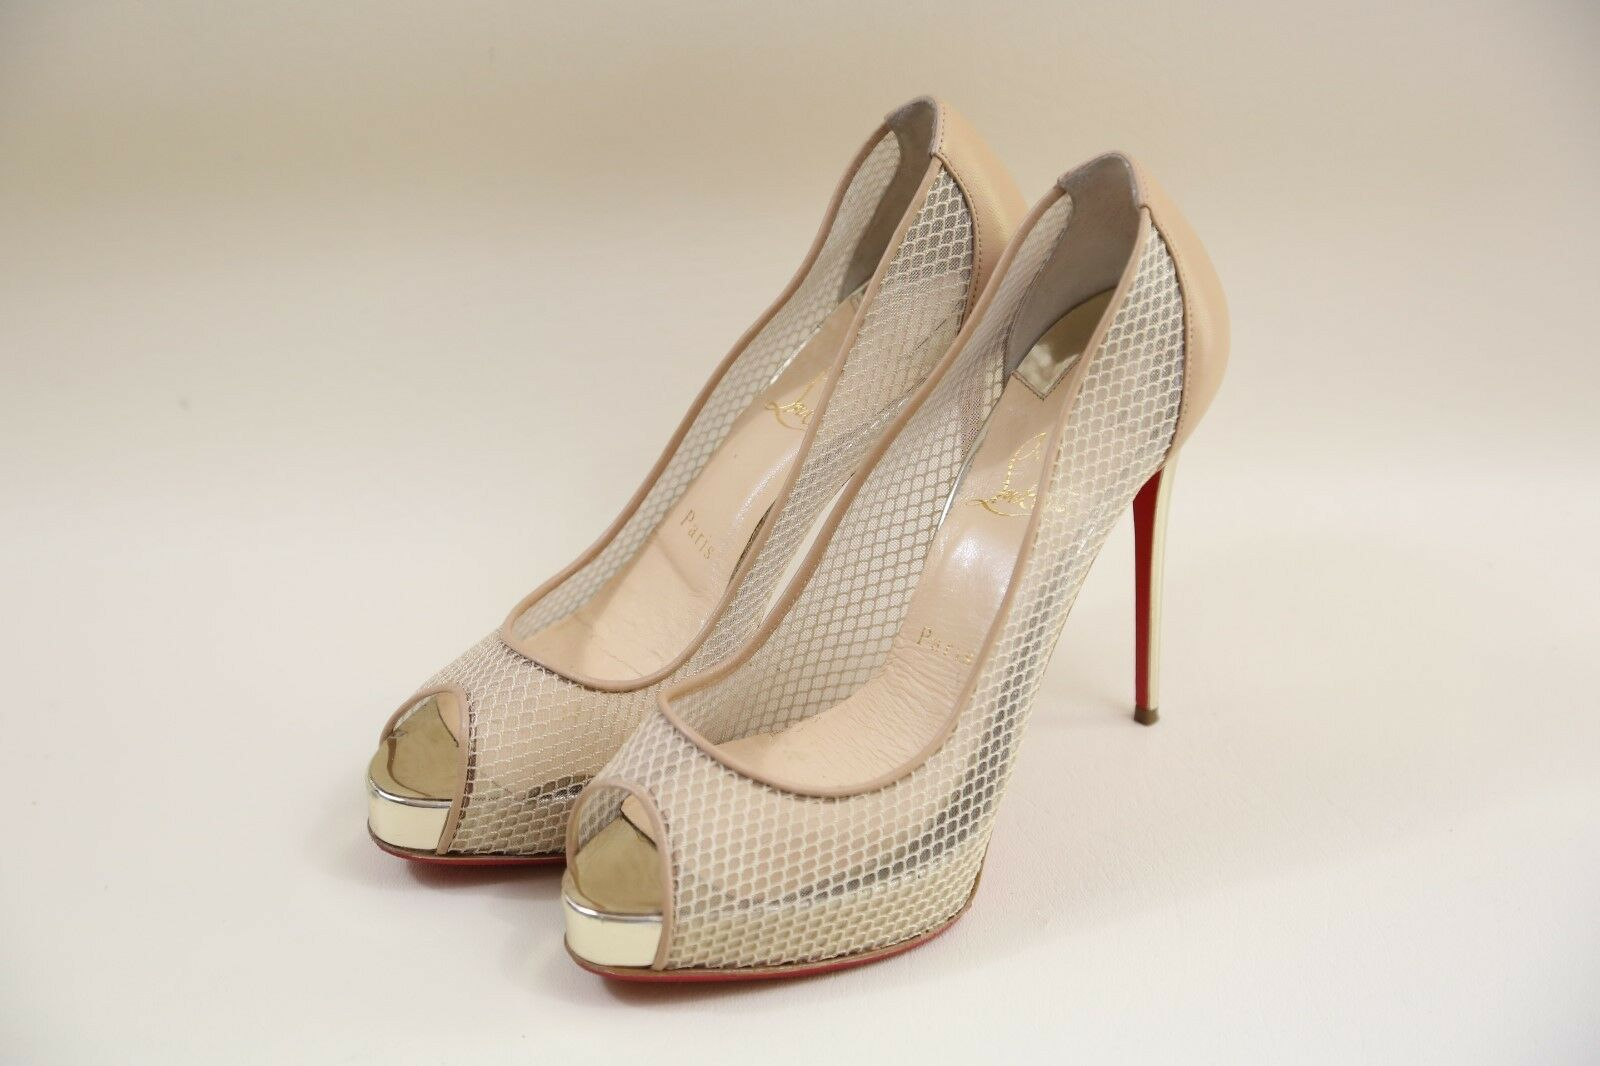 25 Christian Louboutin 'Very Rete' Mesh Pep Toe Pumps Size 39  RETAIL  965